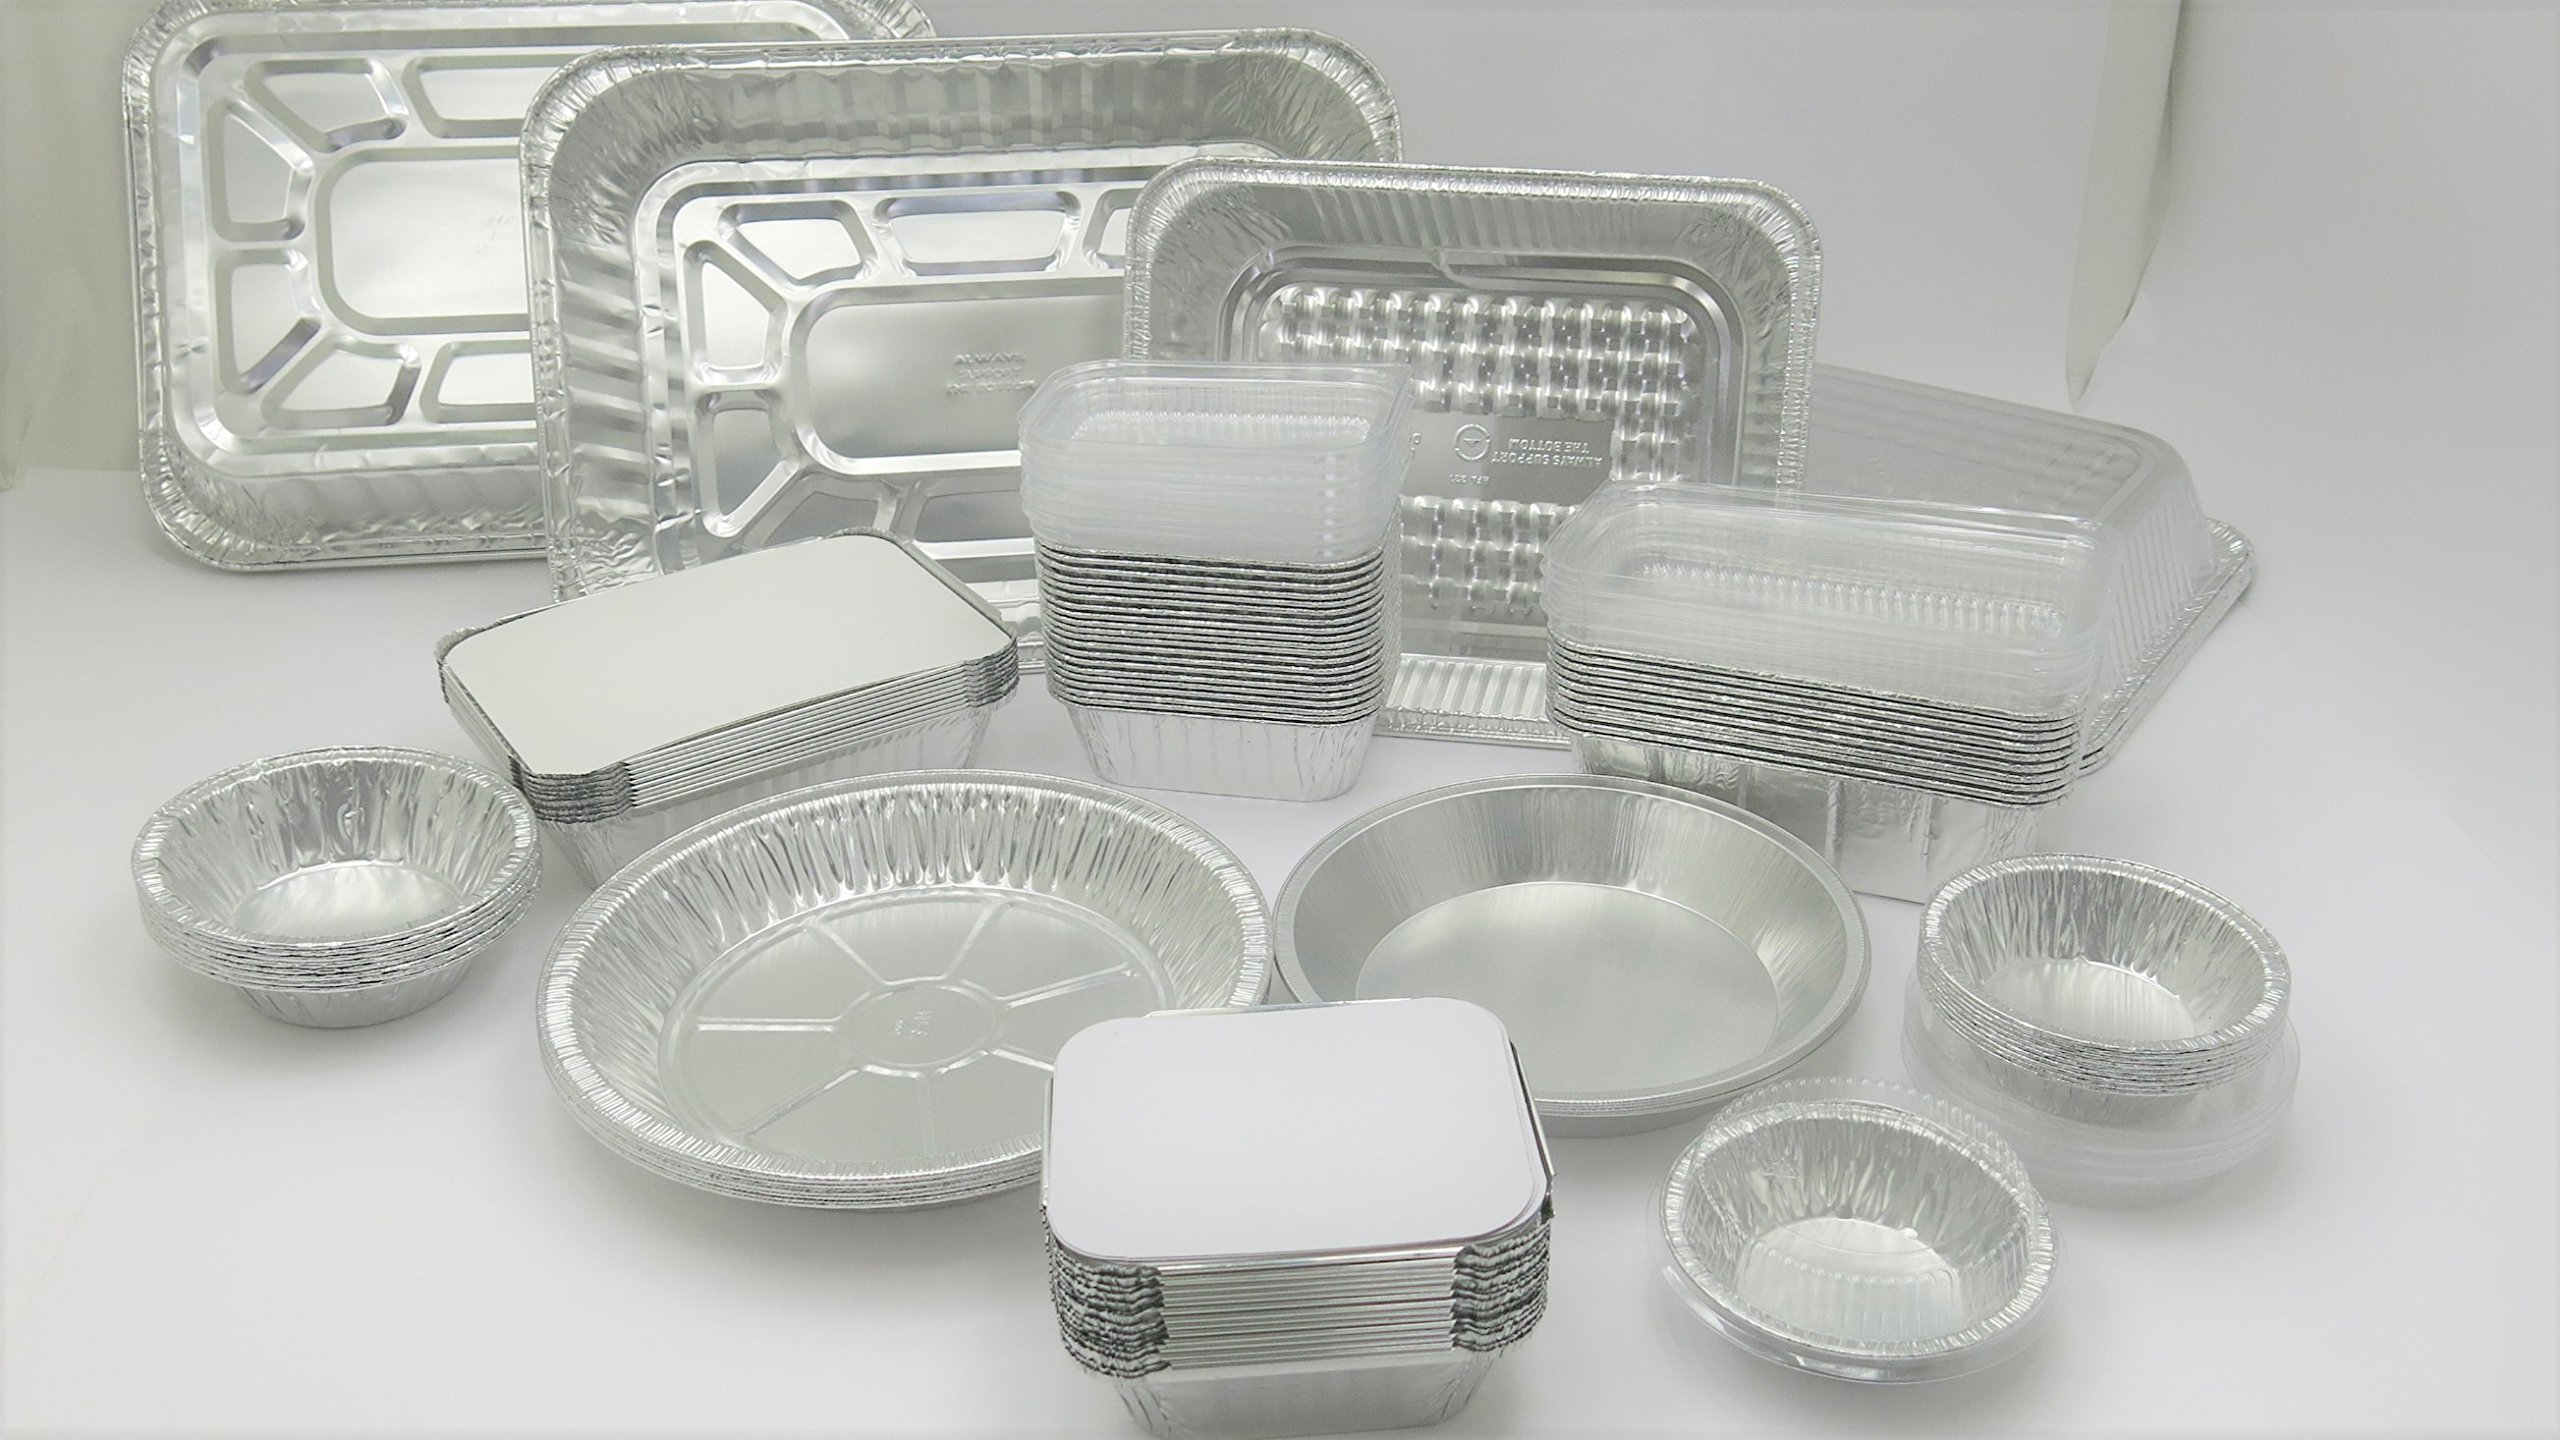 KitchenDance Disposable Aluminum Holiday/Party Pack of Pans. Roasting pans, Steam Table Pans, Food Savers, Loaf pans & Pie Pans. Value Pack of 95 pans!